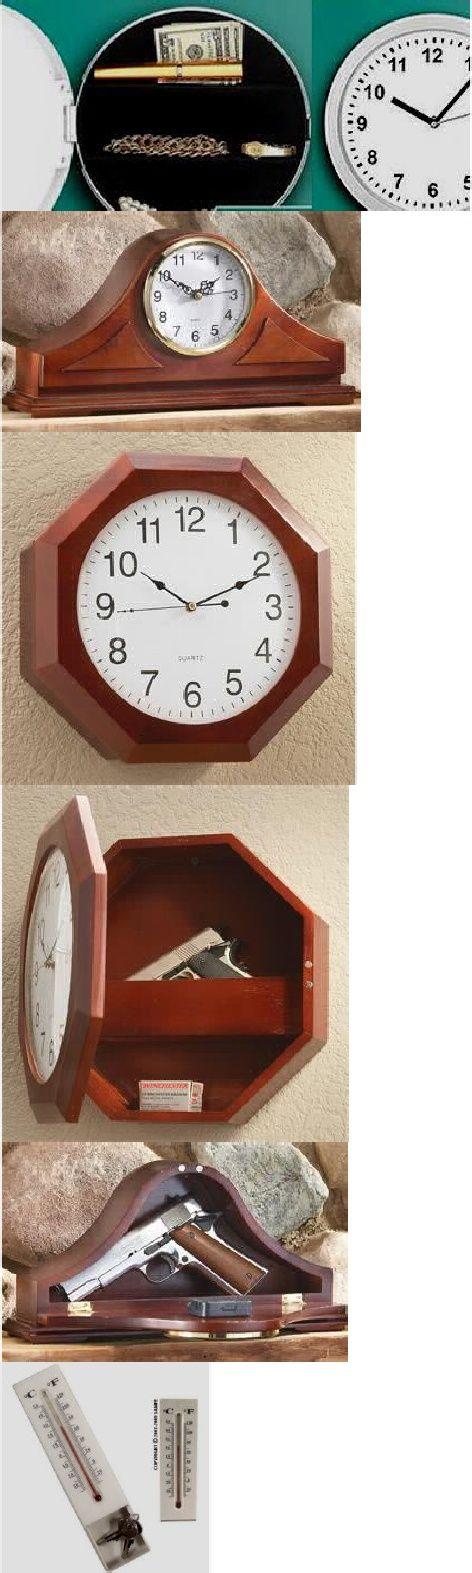 Hidden Storage and Secret Compartment ideas: long article with cool photos